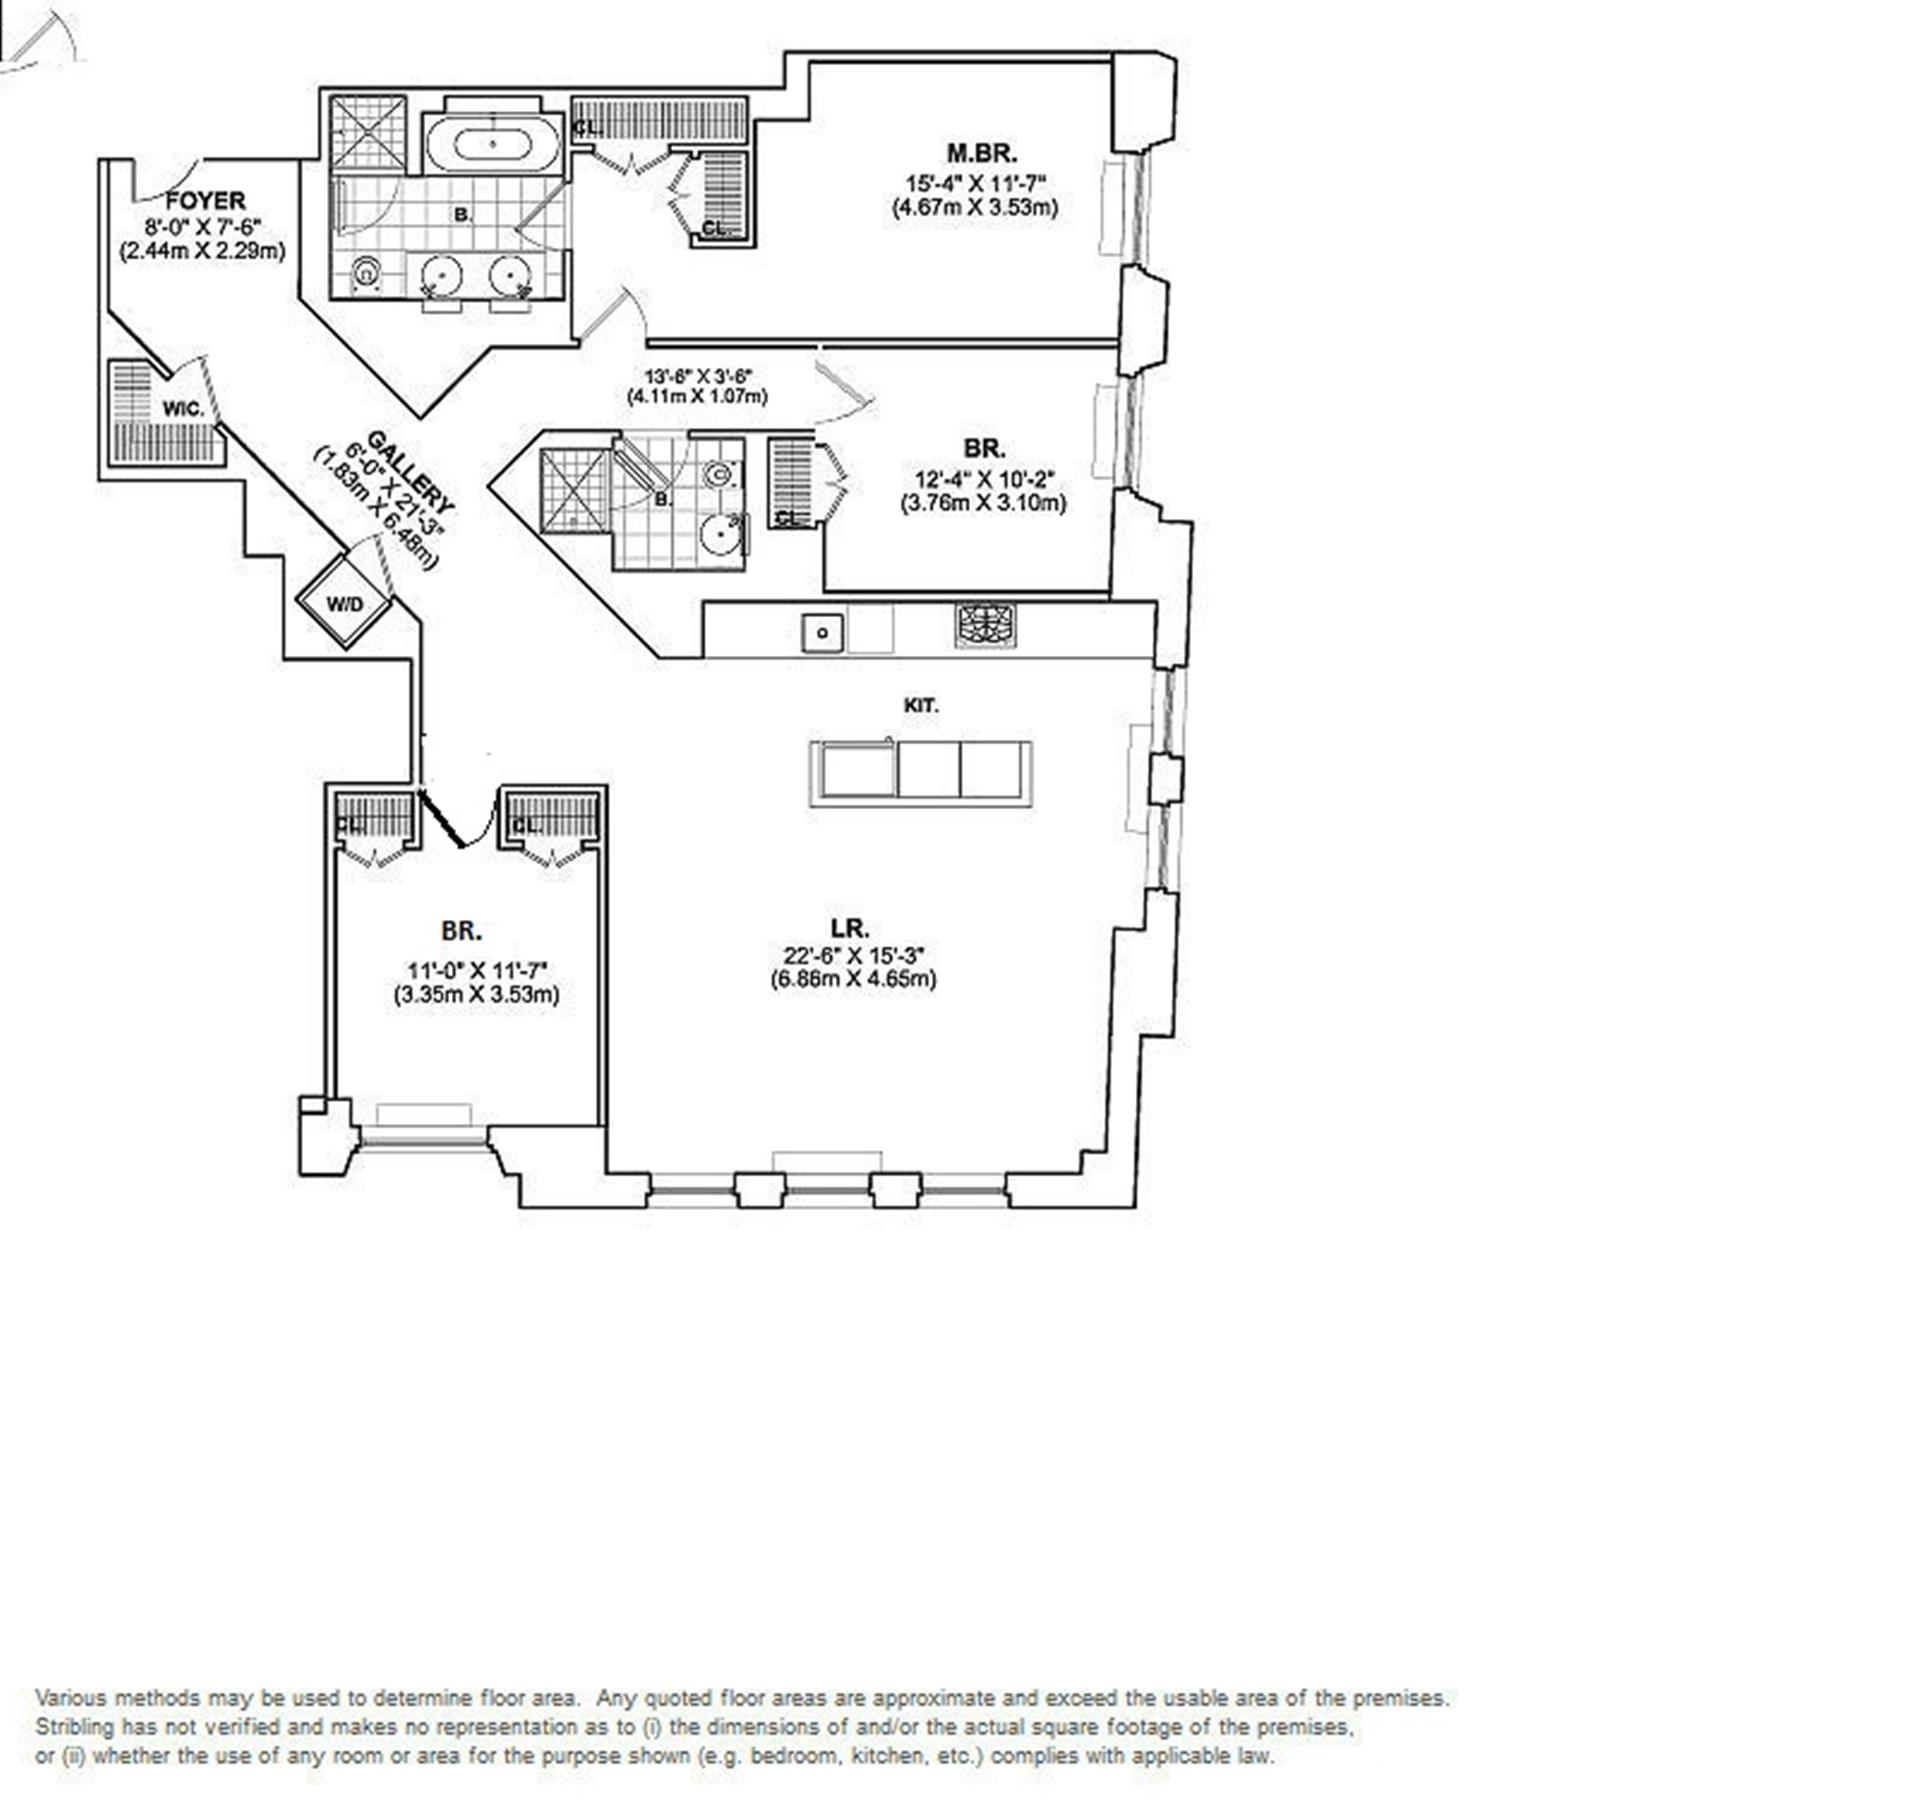 Floor plan of DOWNTOWN BY STARCK, 15 Broad St, 2520 - Financial District, New York